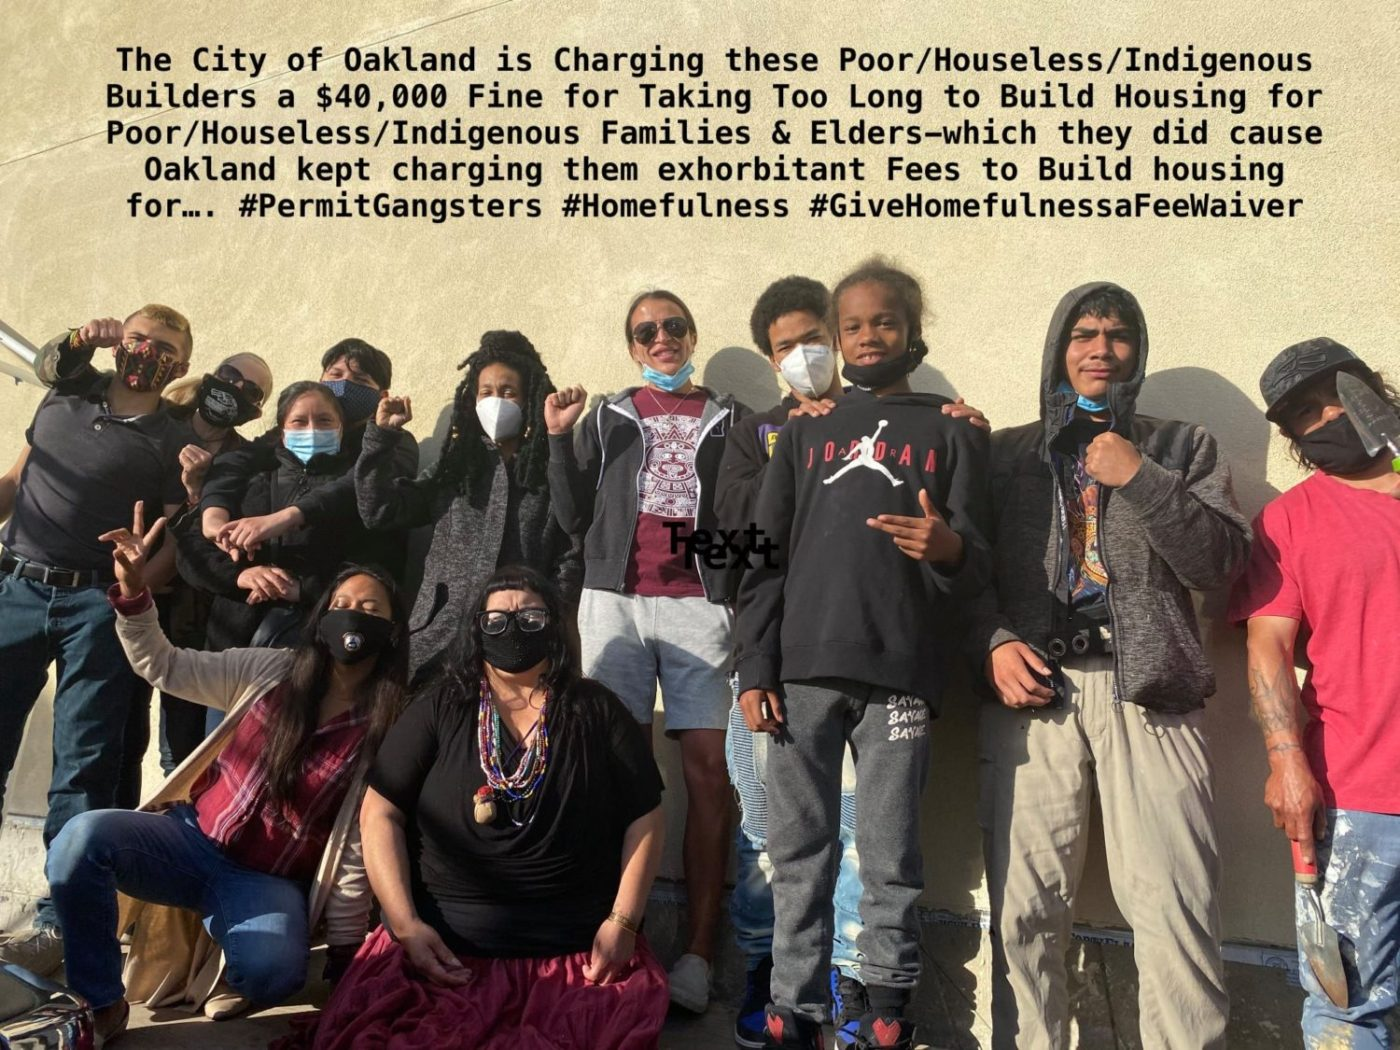 Oakland-charging-Homefulness-40000-for-taking-too-long-to-build-meme-by-PNN-1400x1050, 'Maybe you shouldn't be building this project', Local News & Views